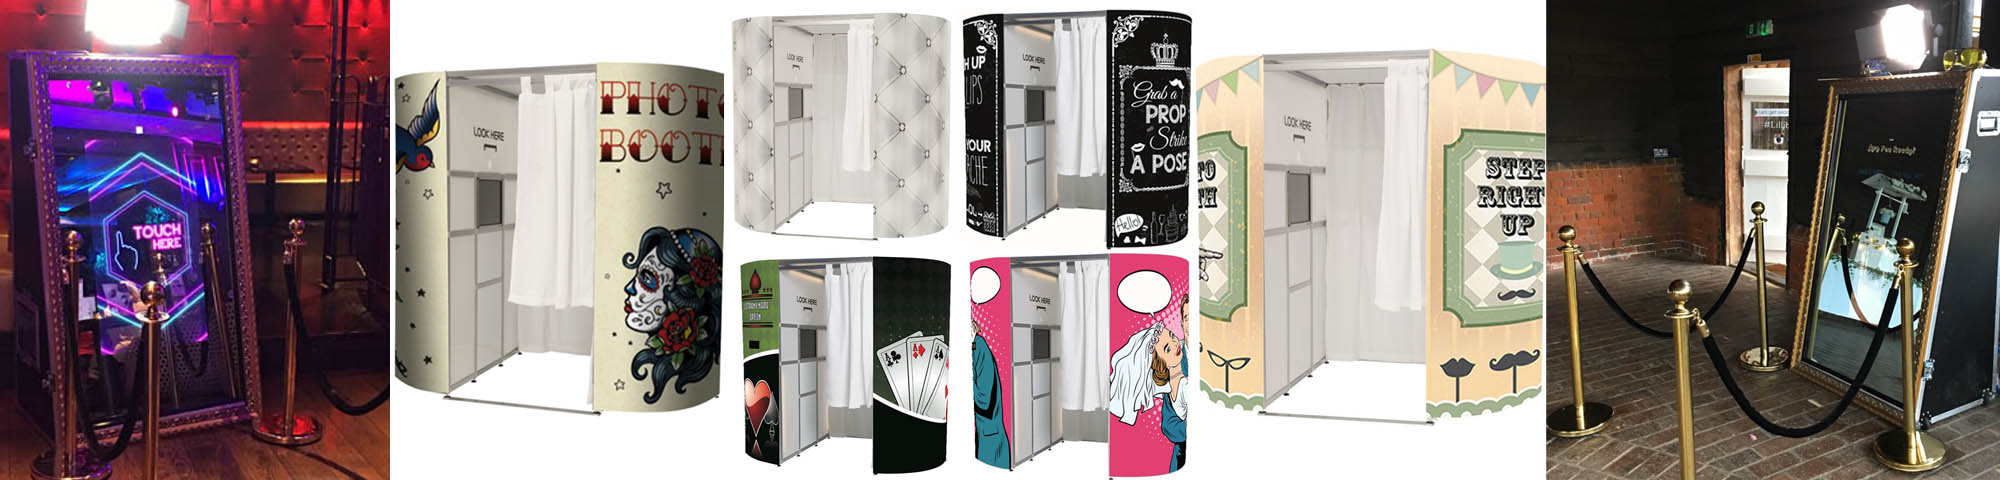 Selection of photo booths for hire in Richmond